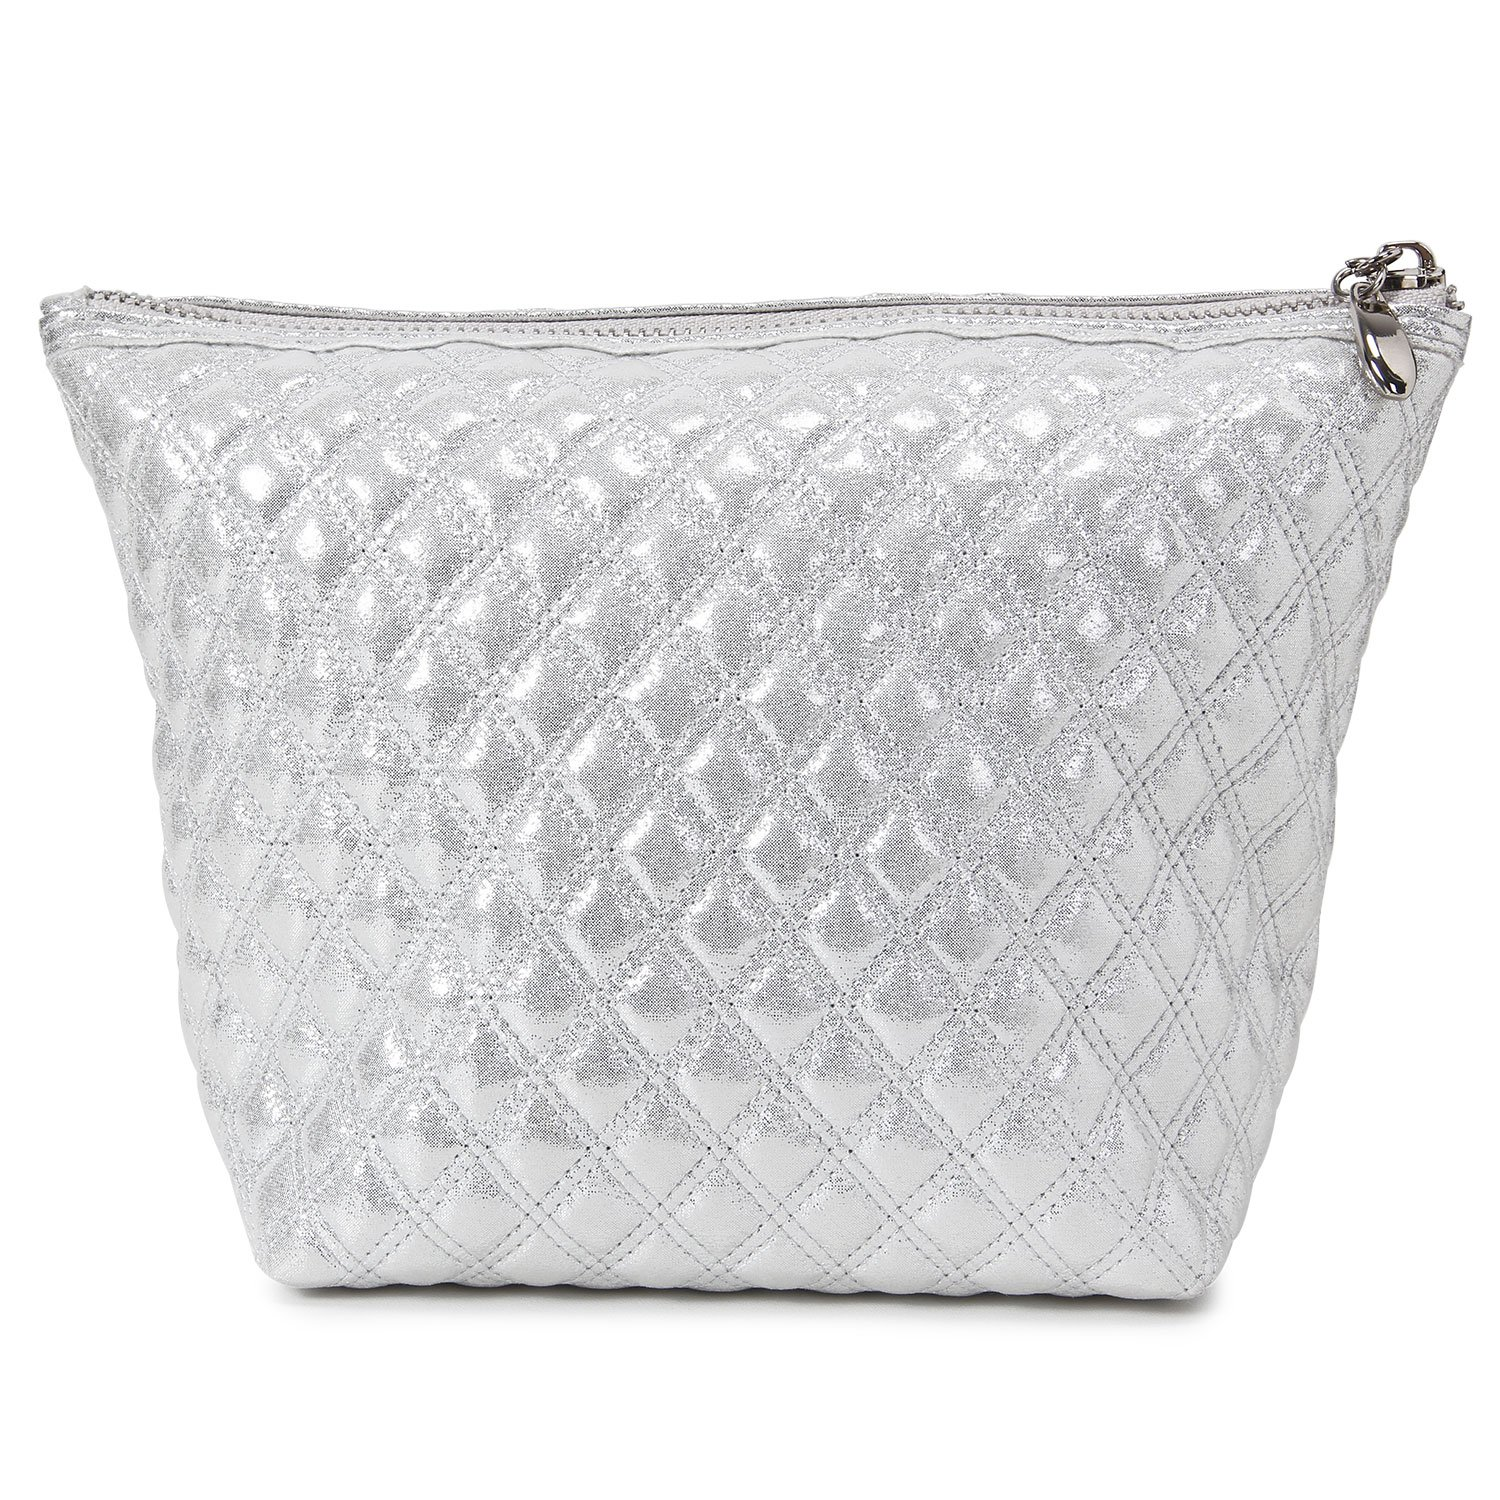 Lifewit Cosmetic Bag Makeup Bag, Beauty Bag for Purse, Beauty Skincare Travel Makeup Pouch Kit for Travel Accessory, Glitter Silver